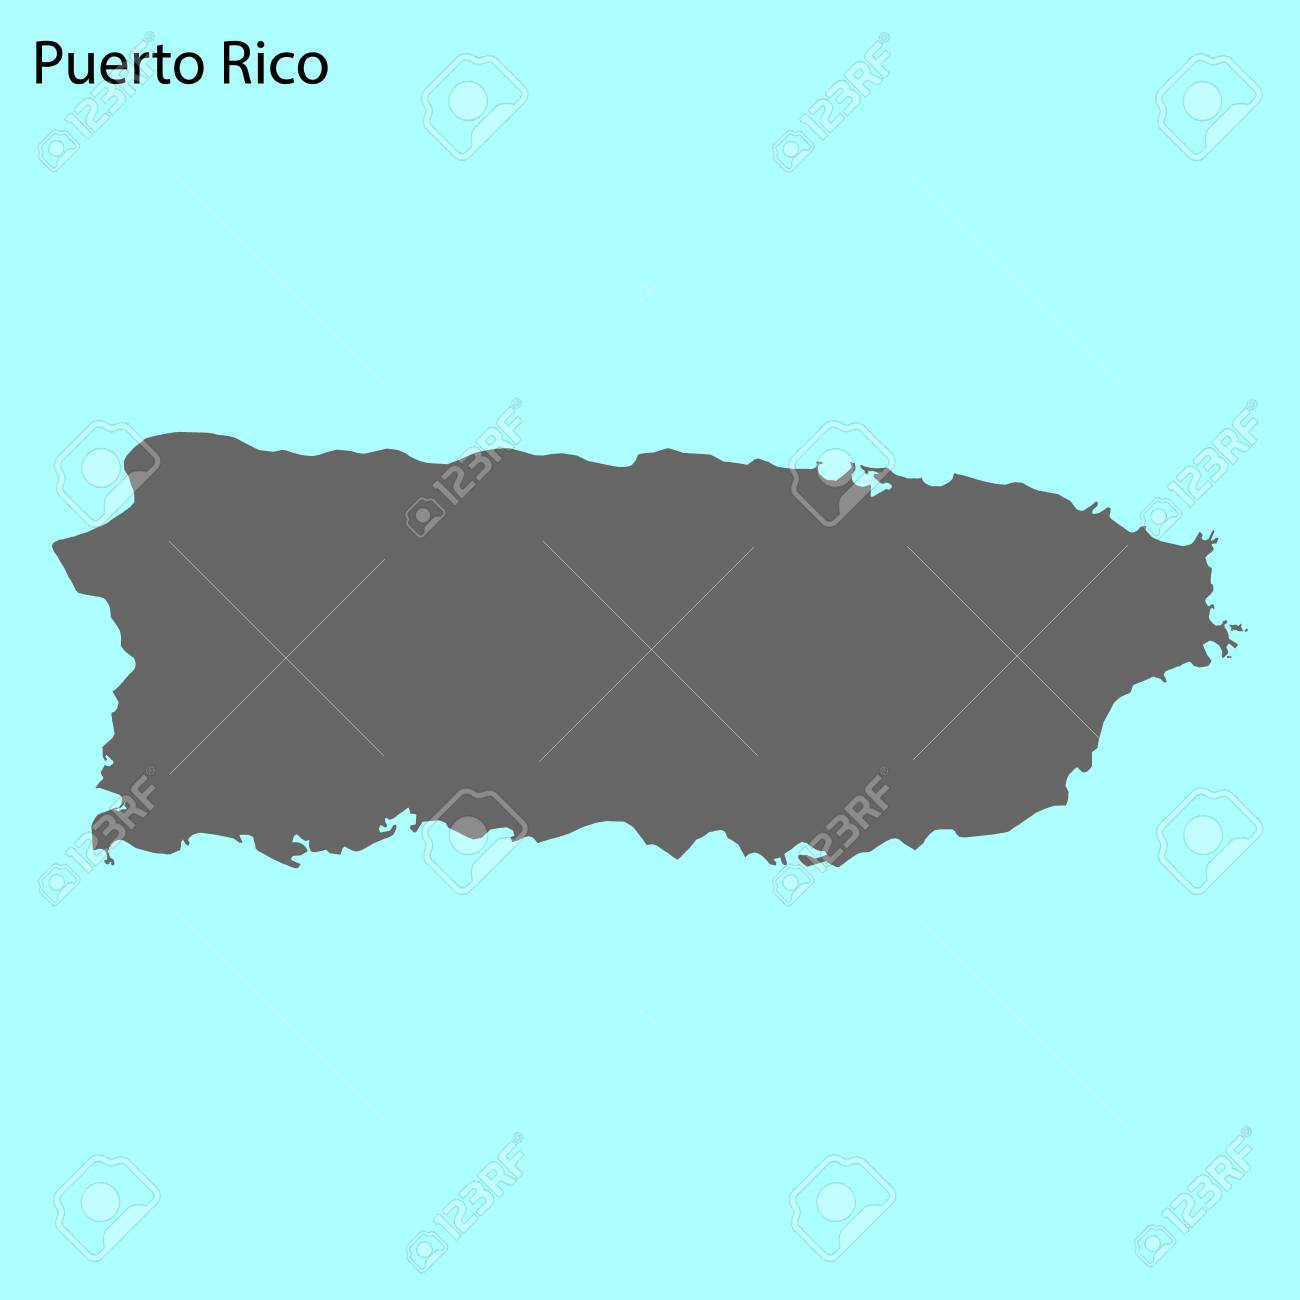 High quality map of Puerto Rico is the island of United States